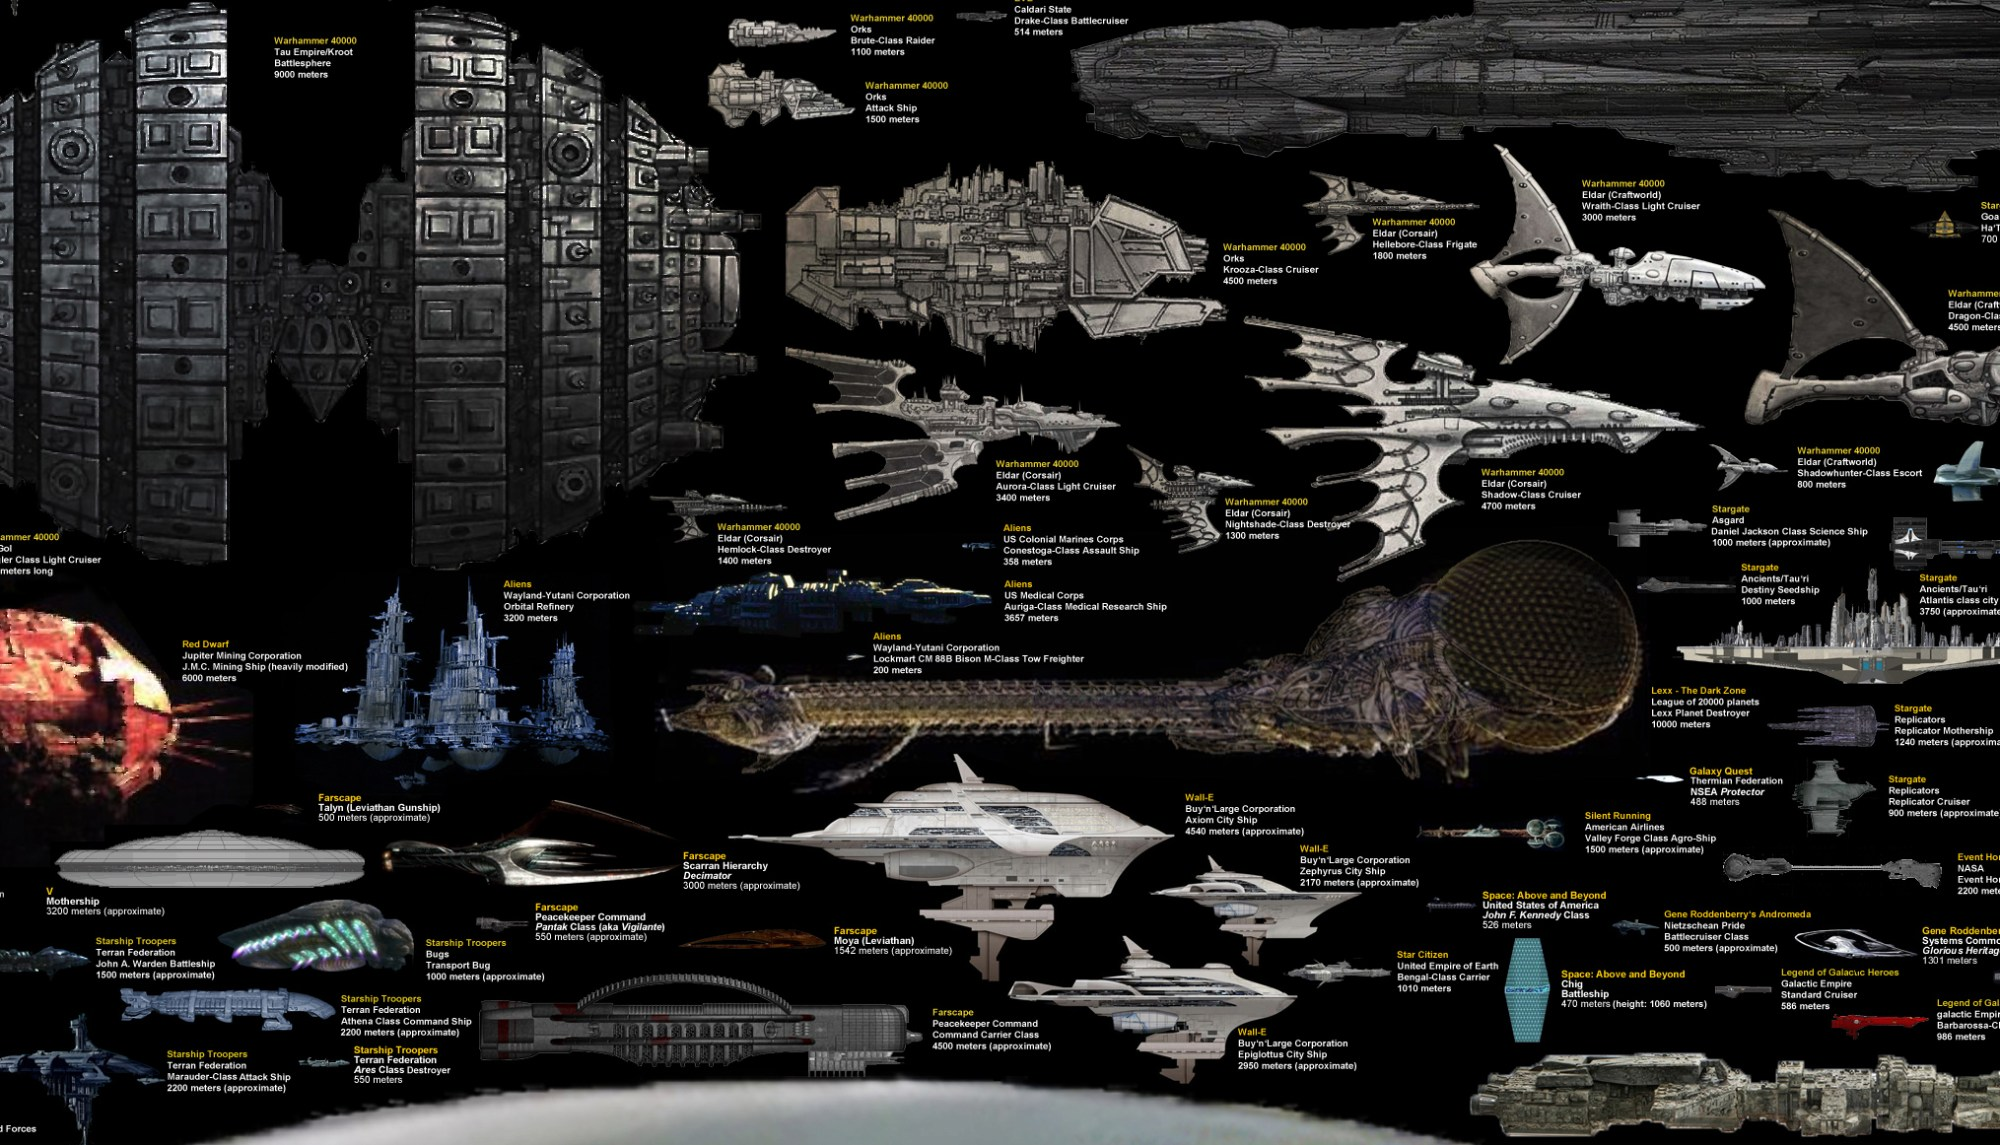 hight resolution of current sci fi space vessel size chart includes all your favorites like star wars star trek mass effect doctor who and more